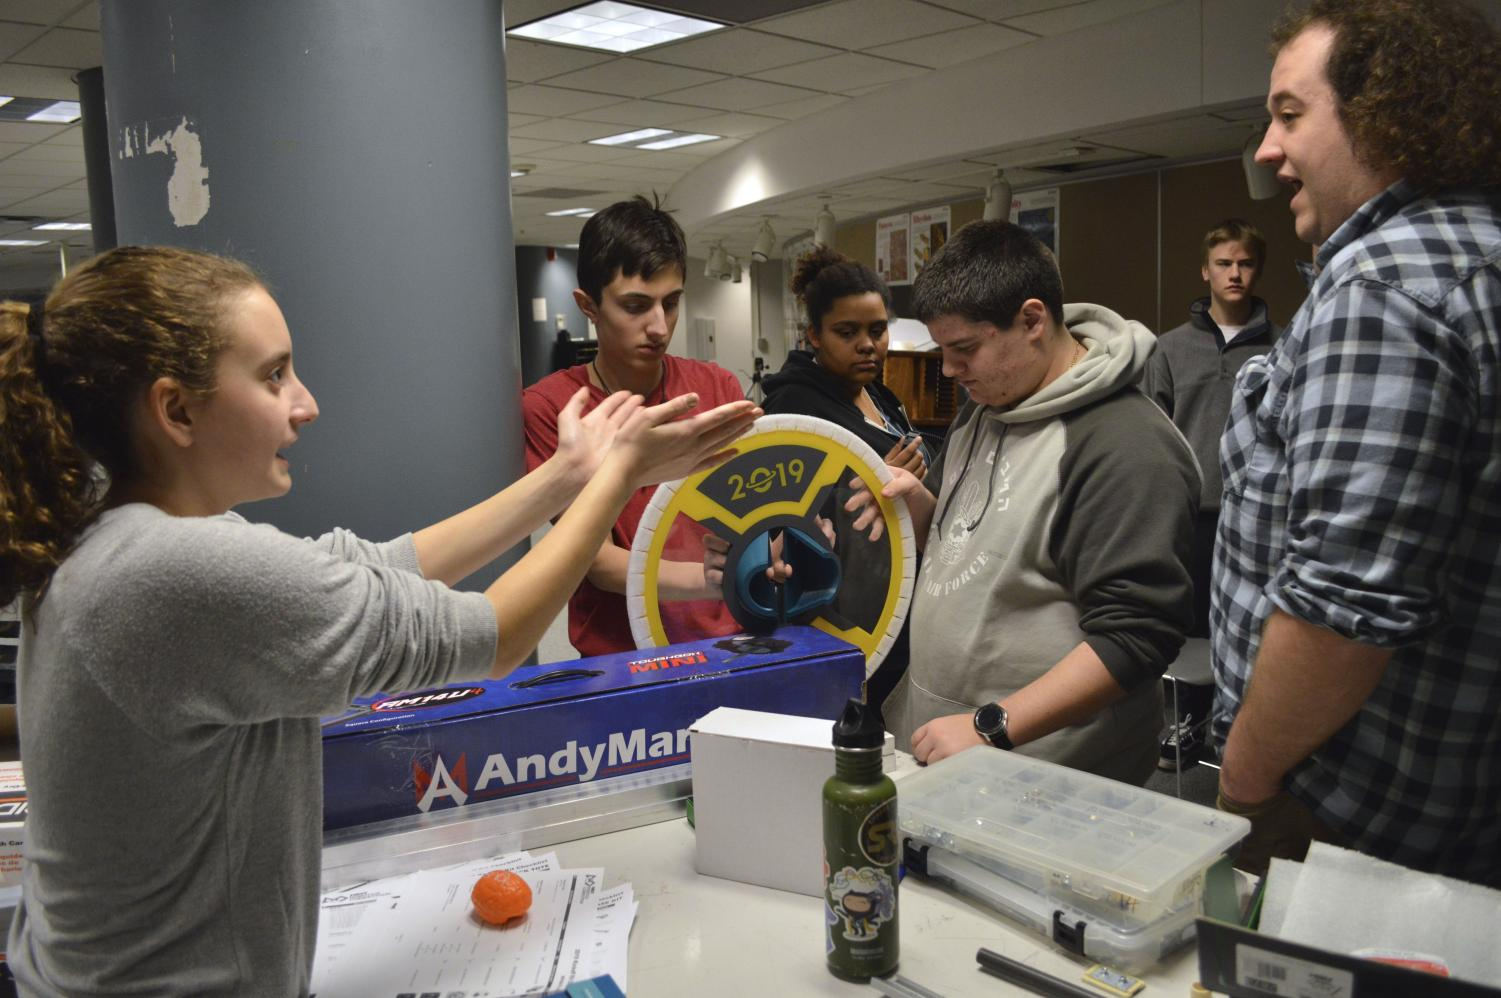 Sophomore robotics member Julia Salita discusses different ways to assemble materials with her fellow team members during a meeting Jan. 7. According to captain Anthony David, the robot has to be finished by Feb. 19 in order to compete in the Destination: Deep Space challenge.